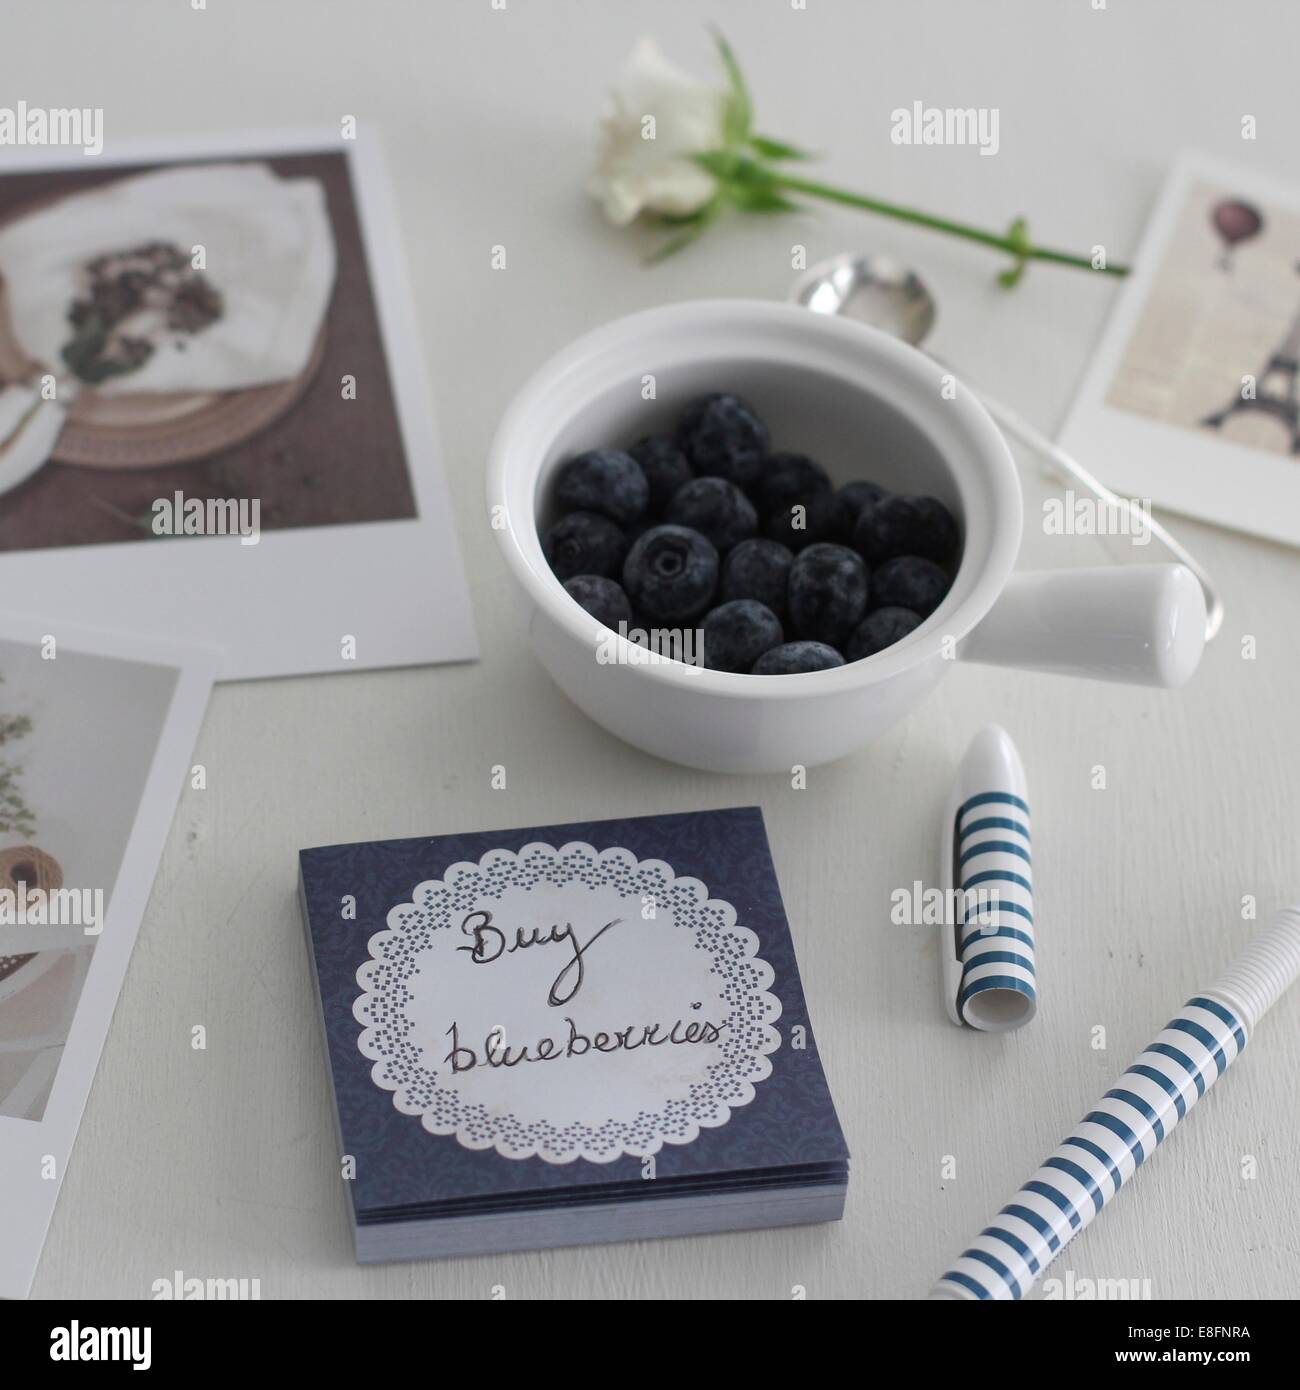 Blueberries in bowl beside hand written memo - Stock Image